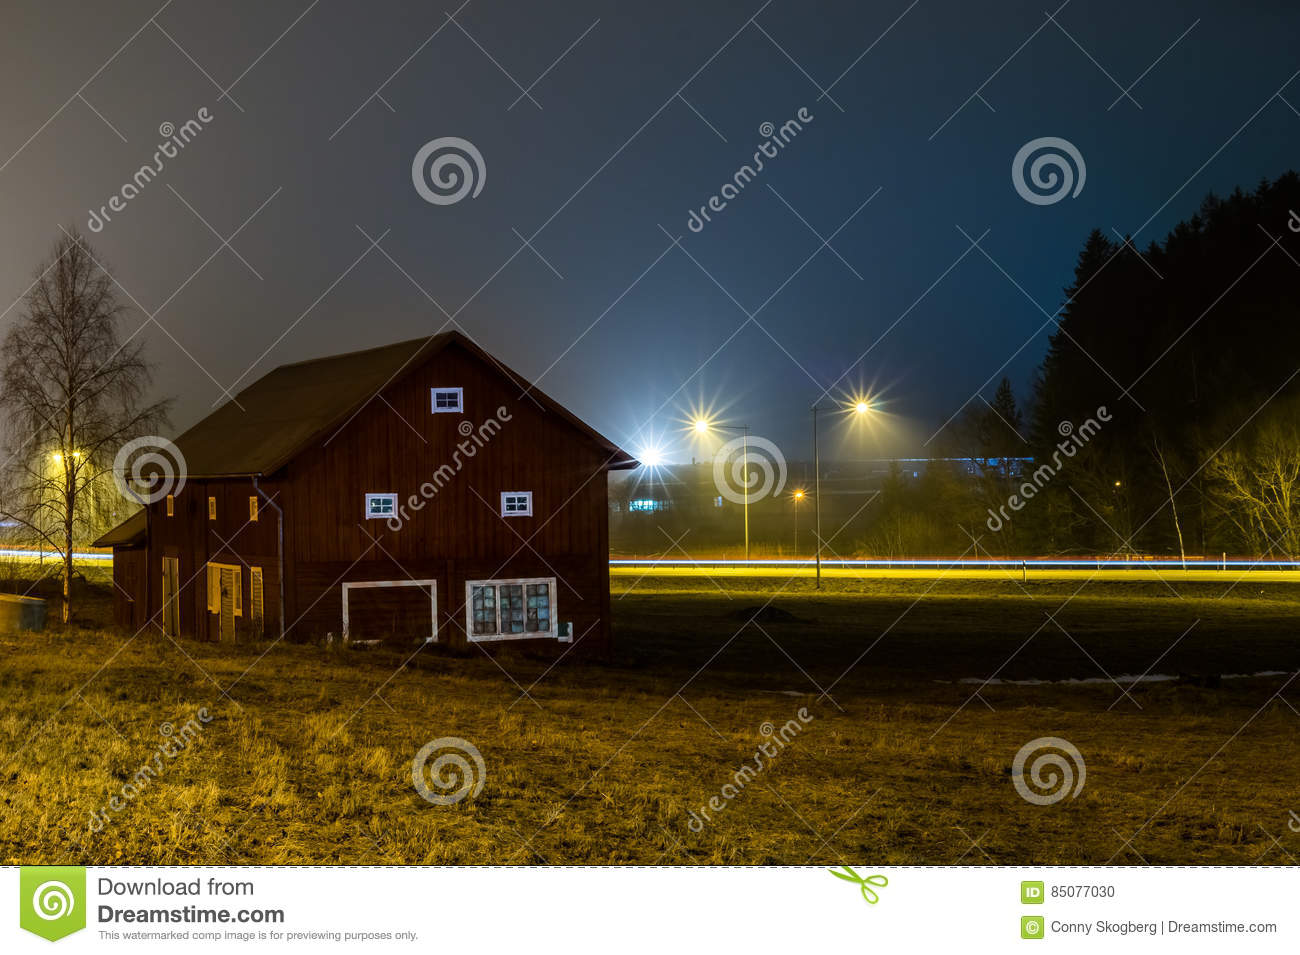 A Long Exposure With A Barn At Night Stock Photo - Image ...